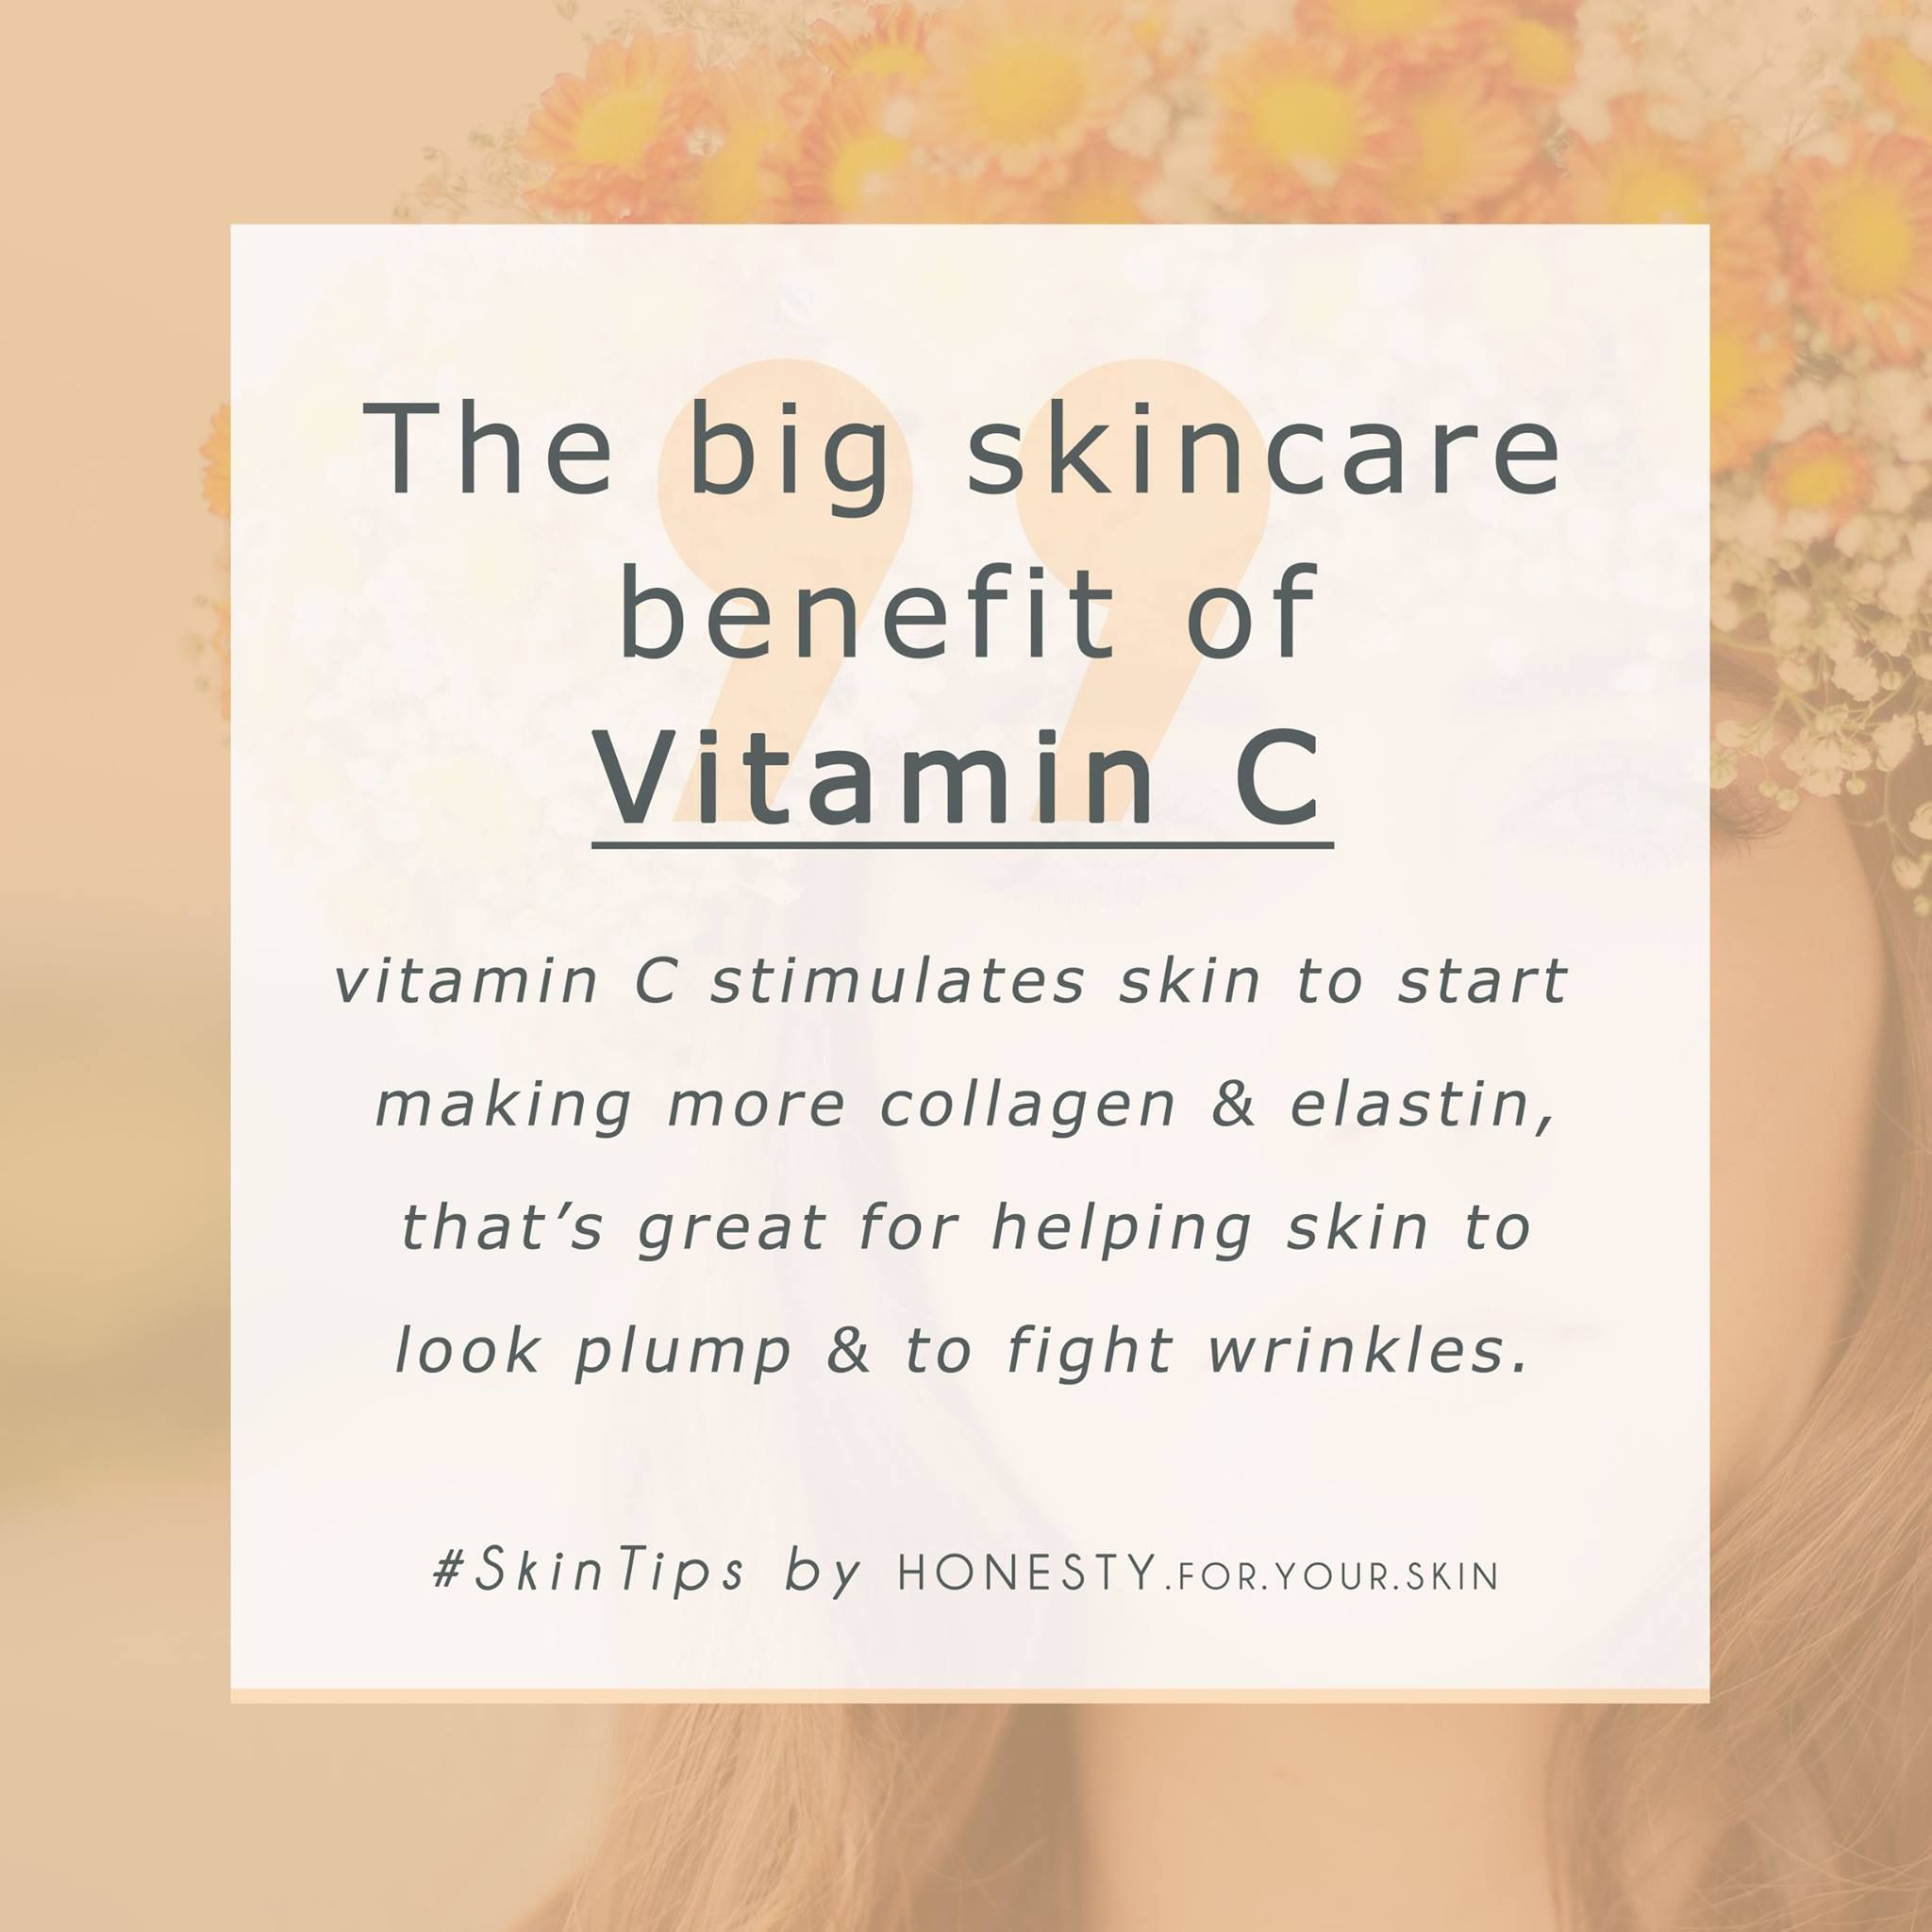 Get Great Skin Now free email course signup   Honesty For Your Skin is part of Anti aging skin products - Skincare scientist empowering women to truly know, love, and care for their skin